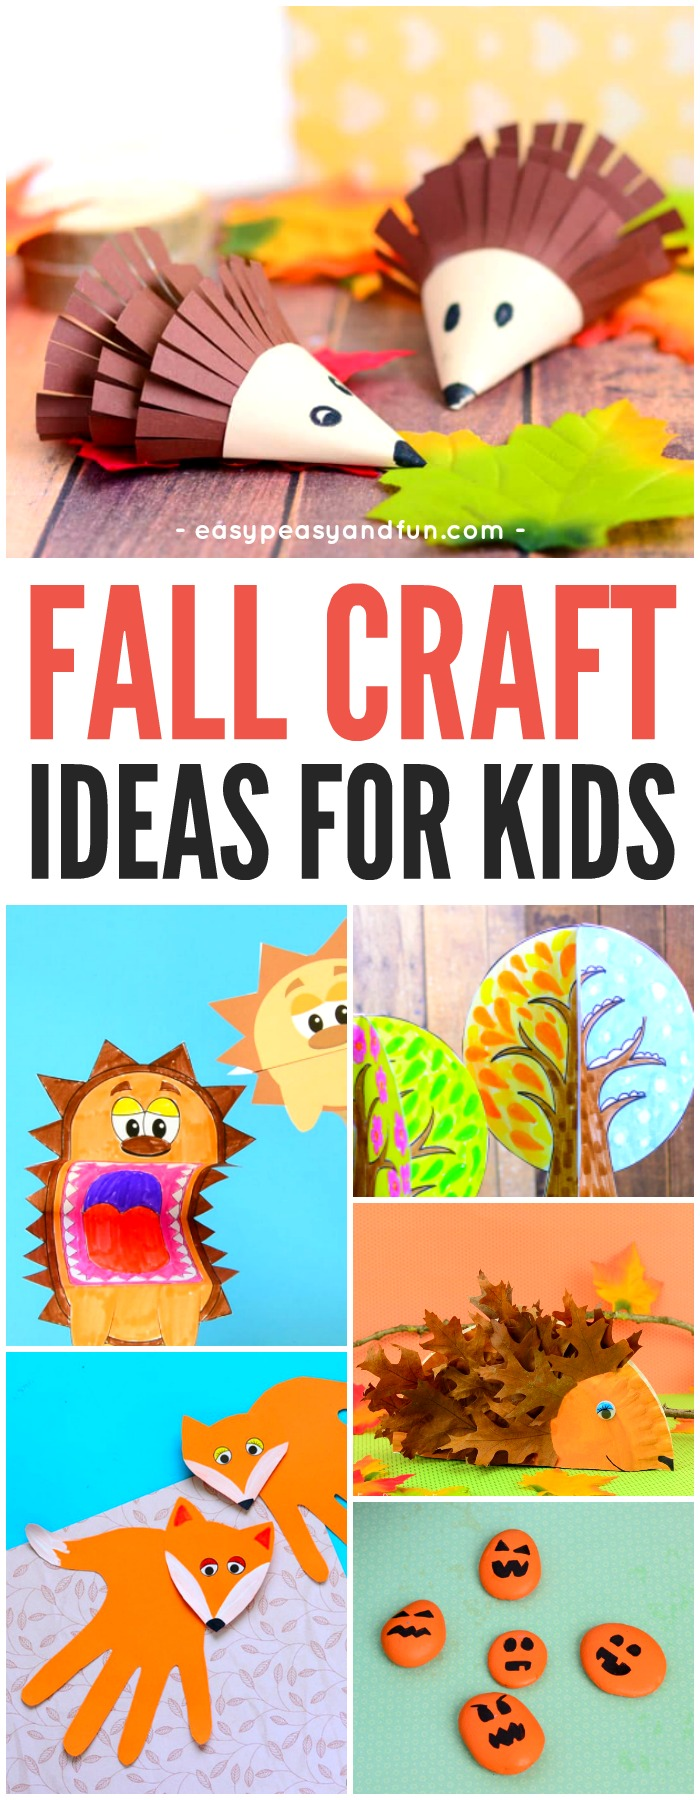 Fall Crafts For Kids Art And Craft Ideas With Printable Templates